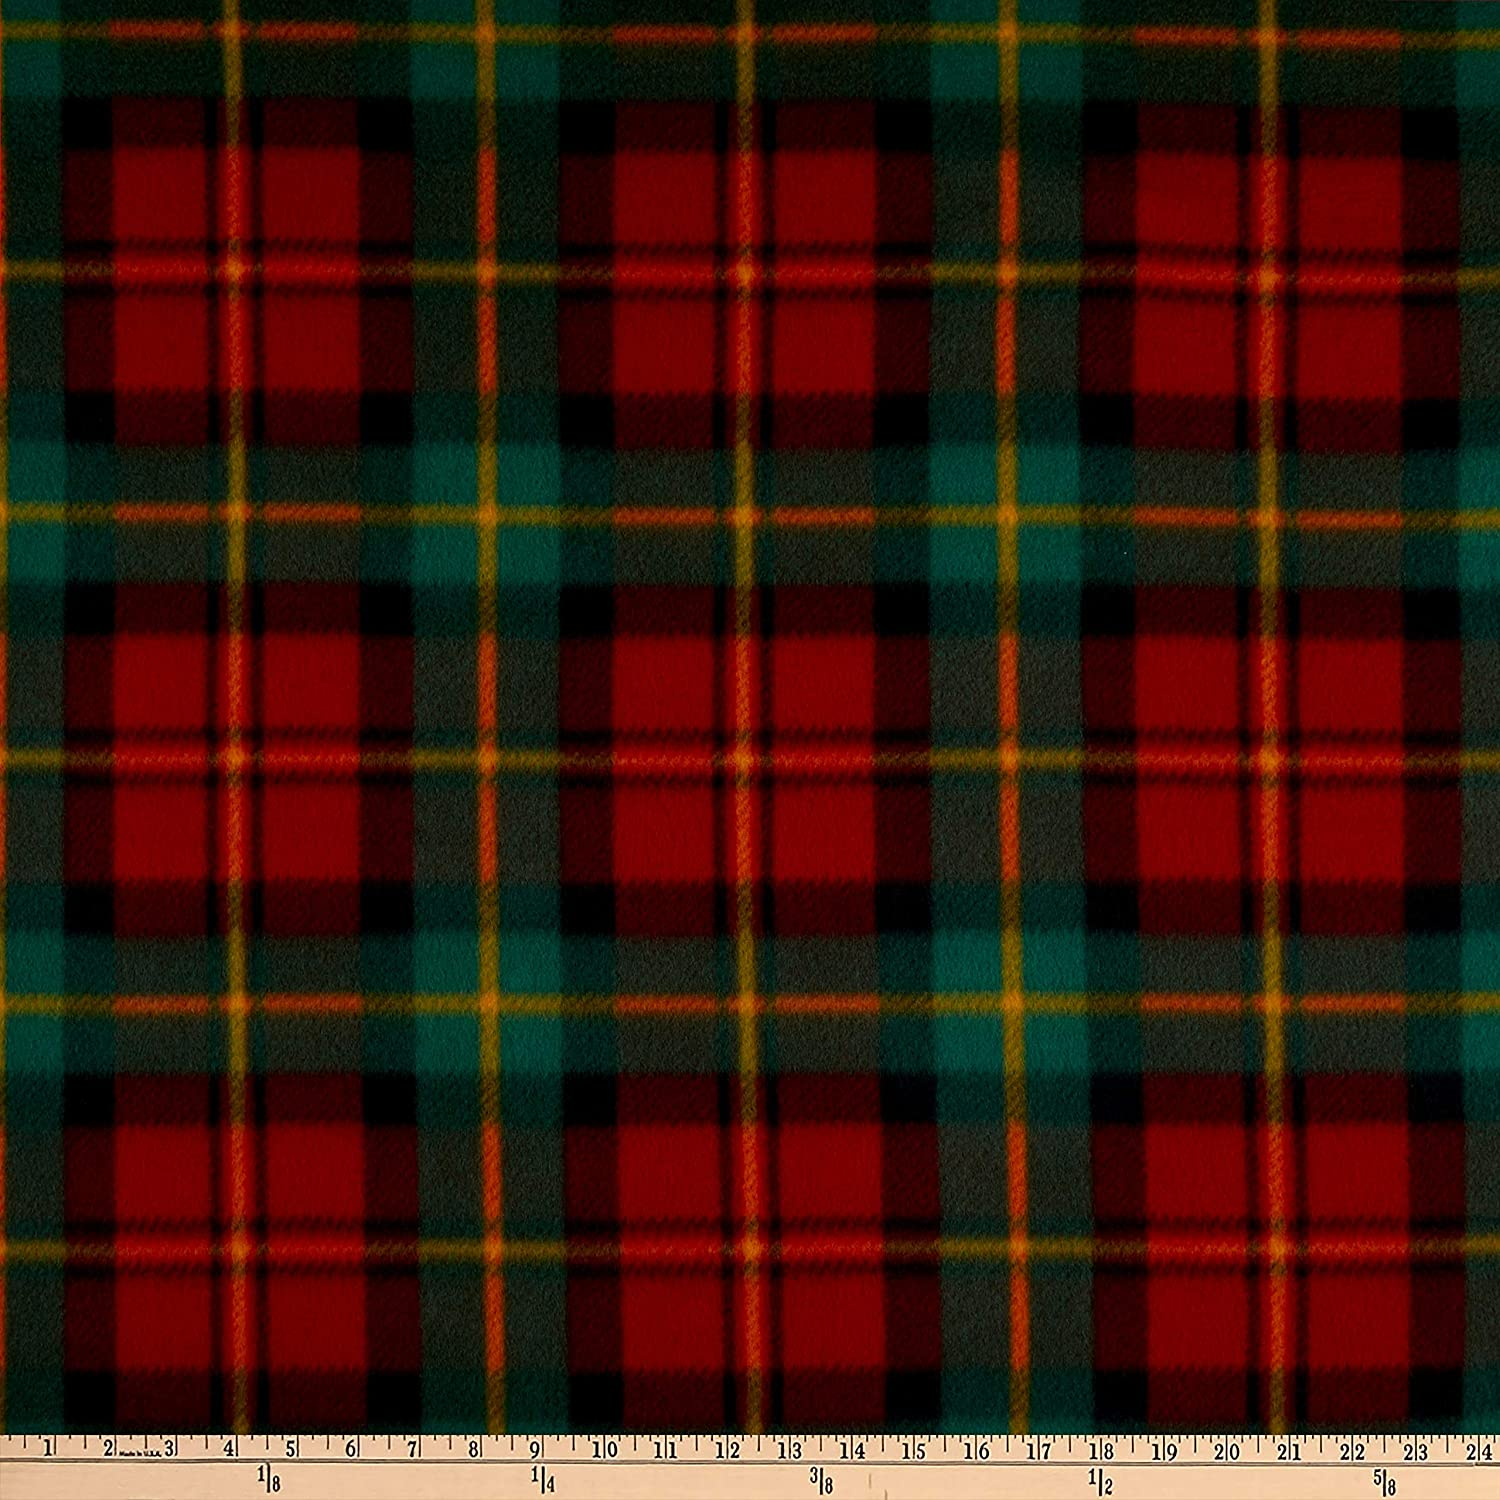 Polar Fleece Chris Plaid Red Ranking integrated 1st place the Yard Some reservation Green Fabric by